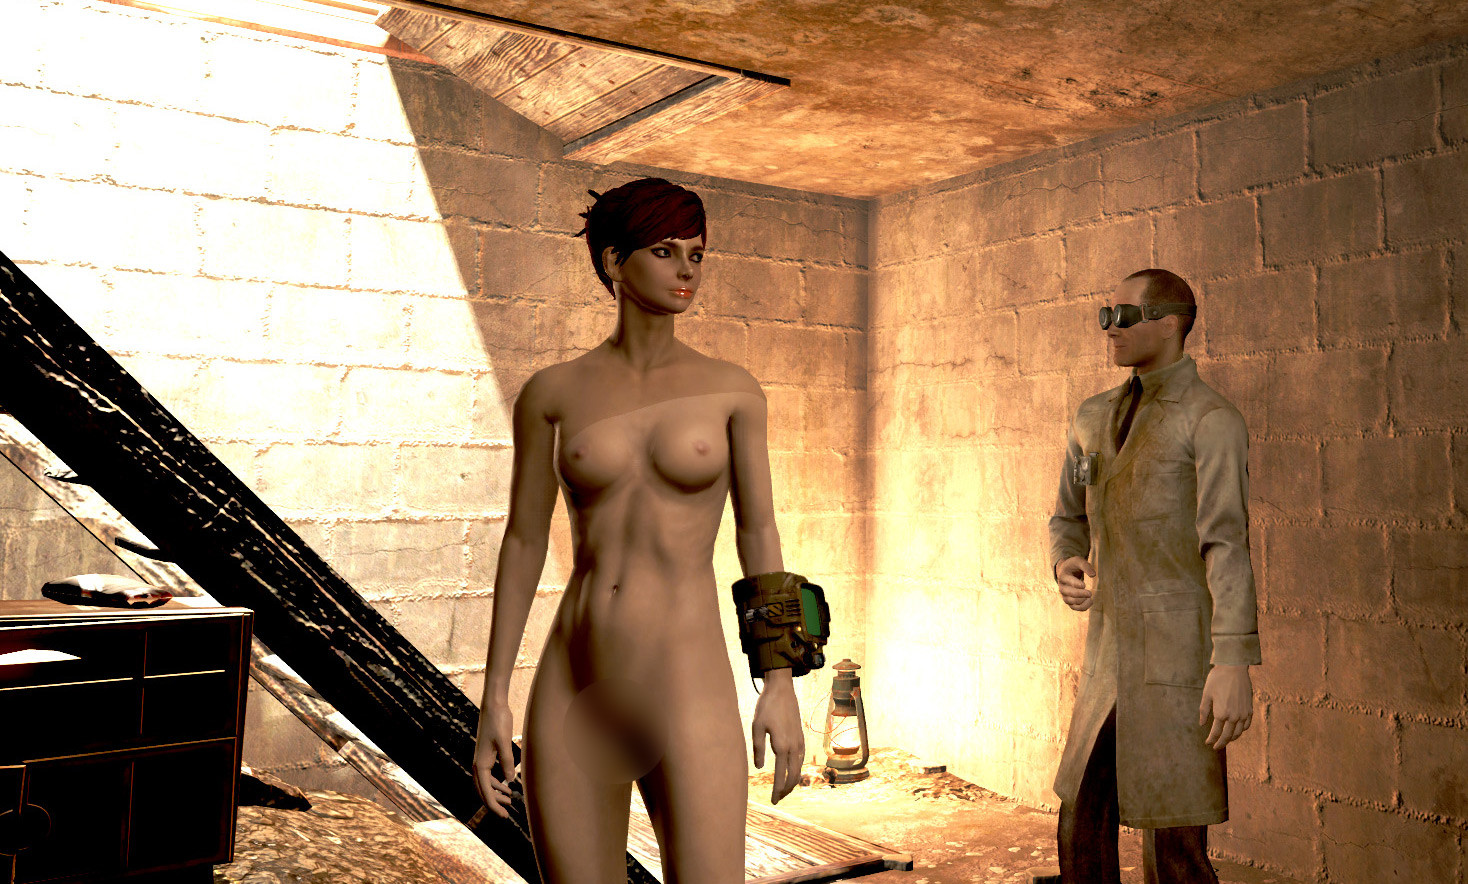 Best fallout 3 naked mod hentai whore